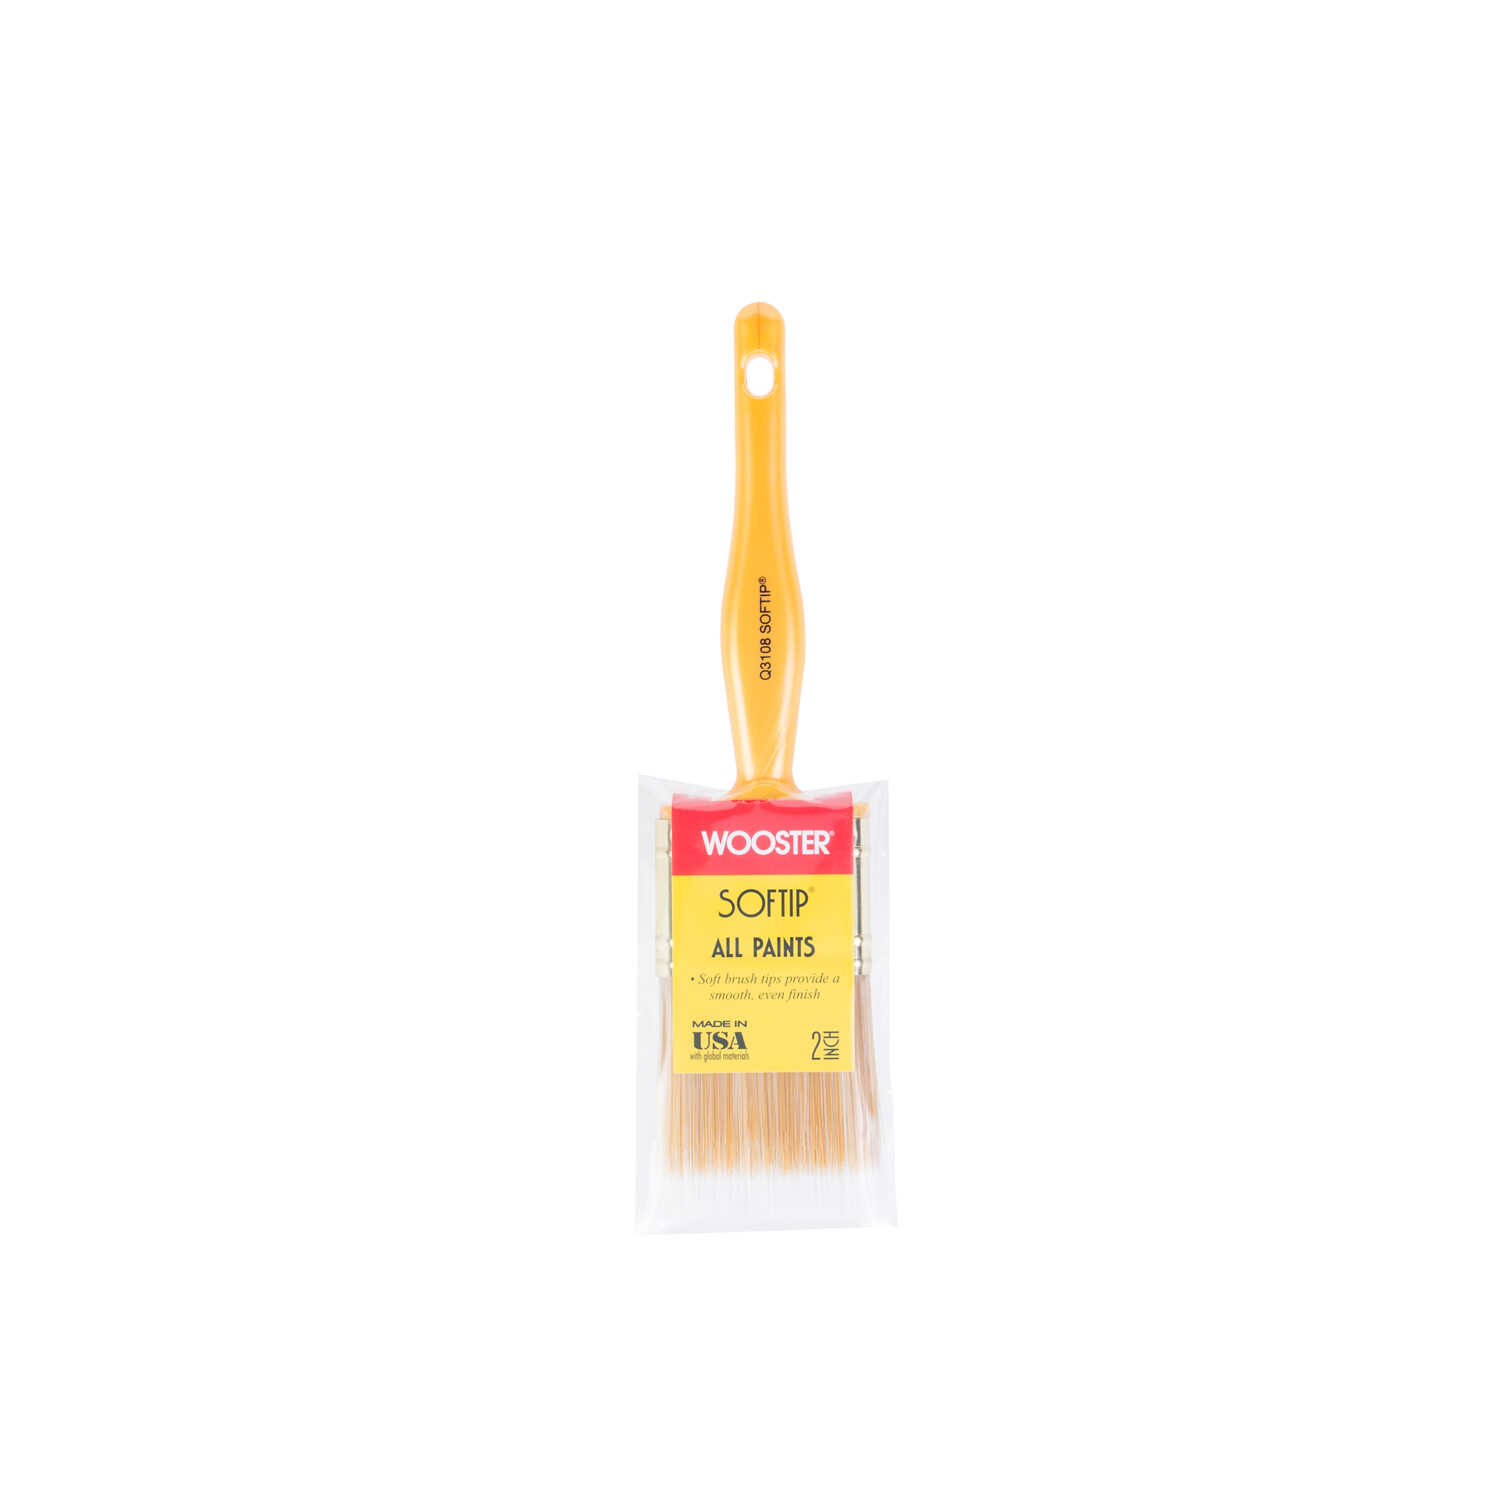 Wooster  Softip  2 in. W Flat  Synthetic Blend  Paint Brush